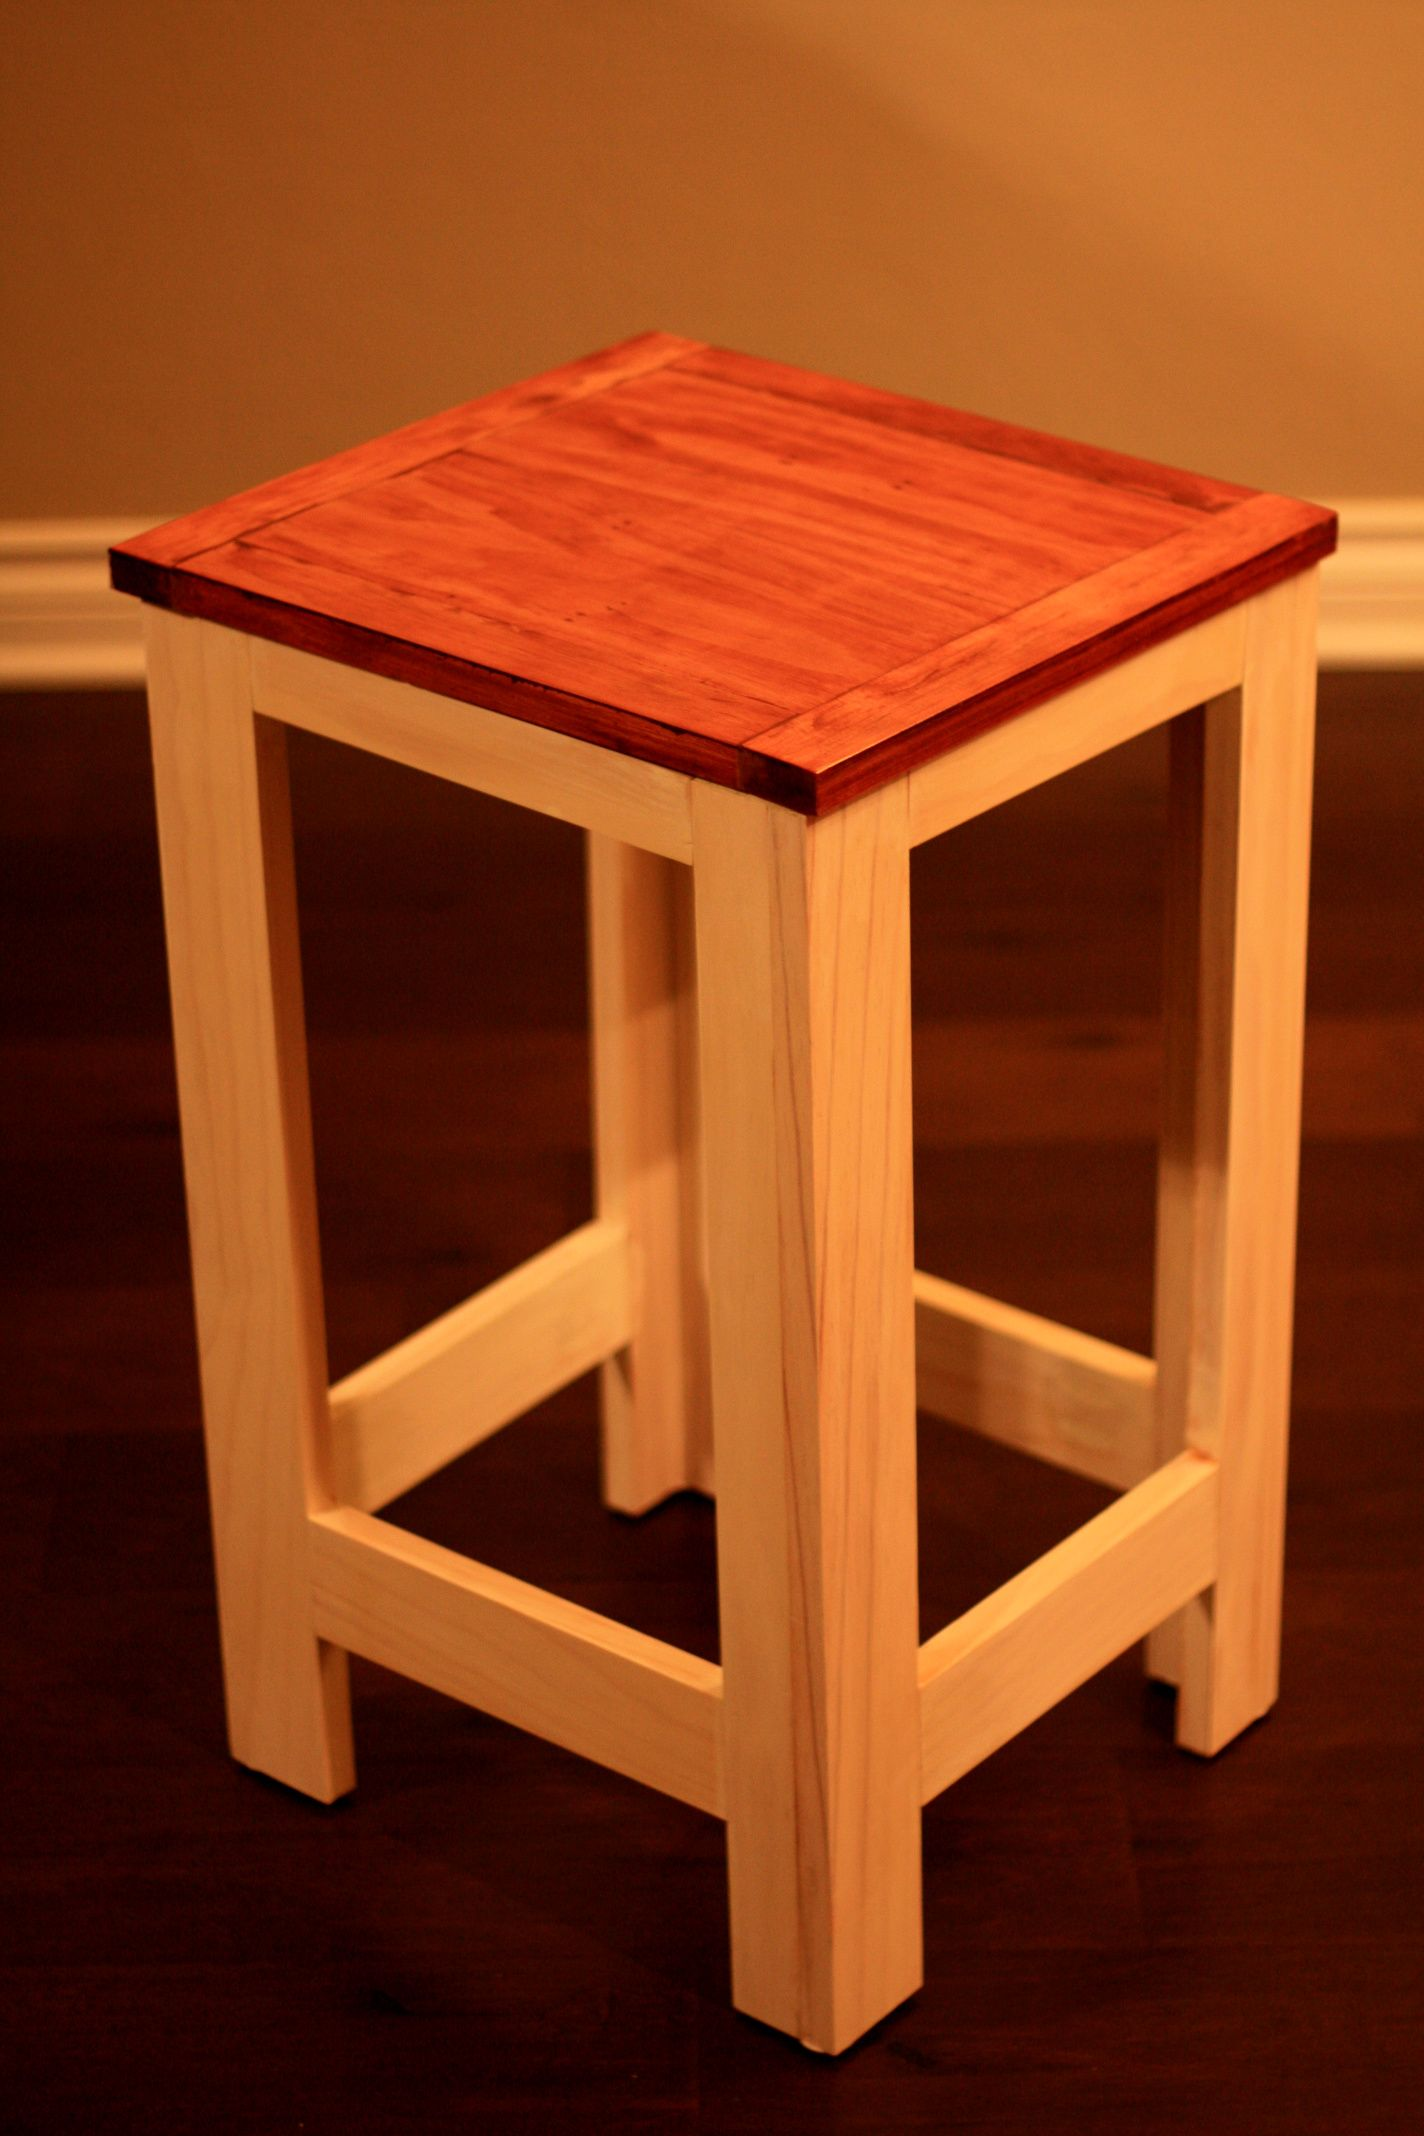 Ana White Work Stool DIY